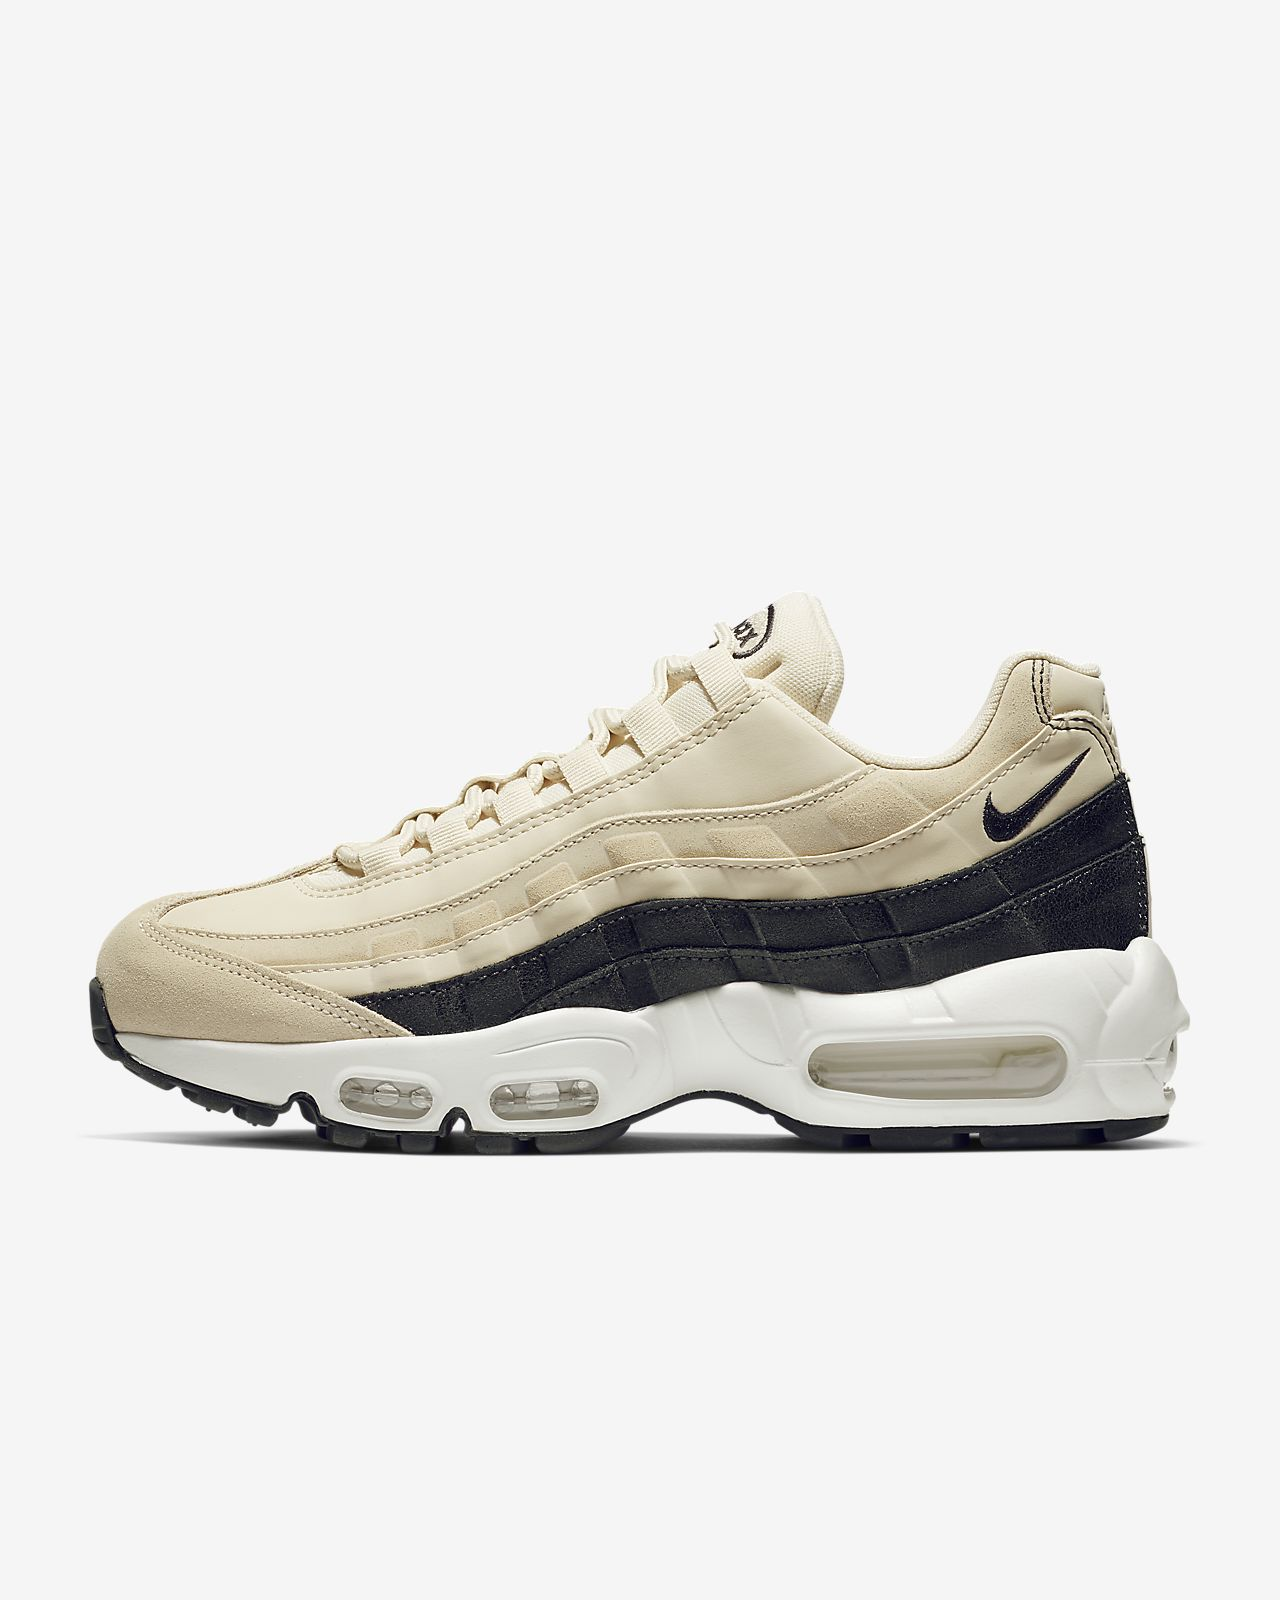 huge discount 3dab8 0152a ... Nike Air Max 95 Premium Women s Shoe